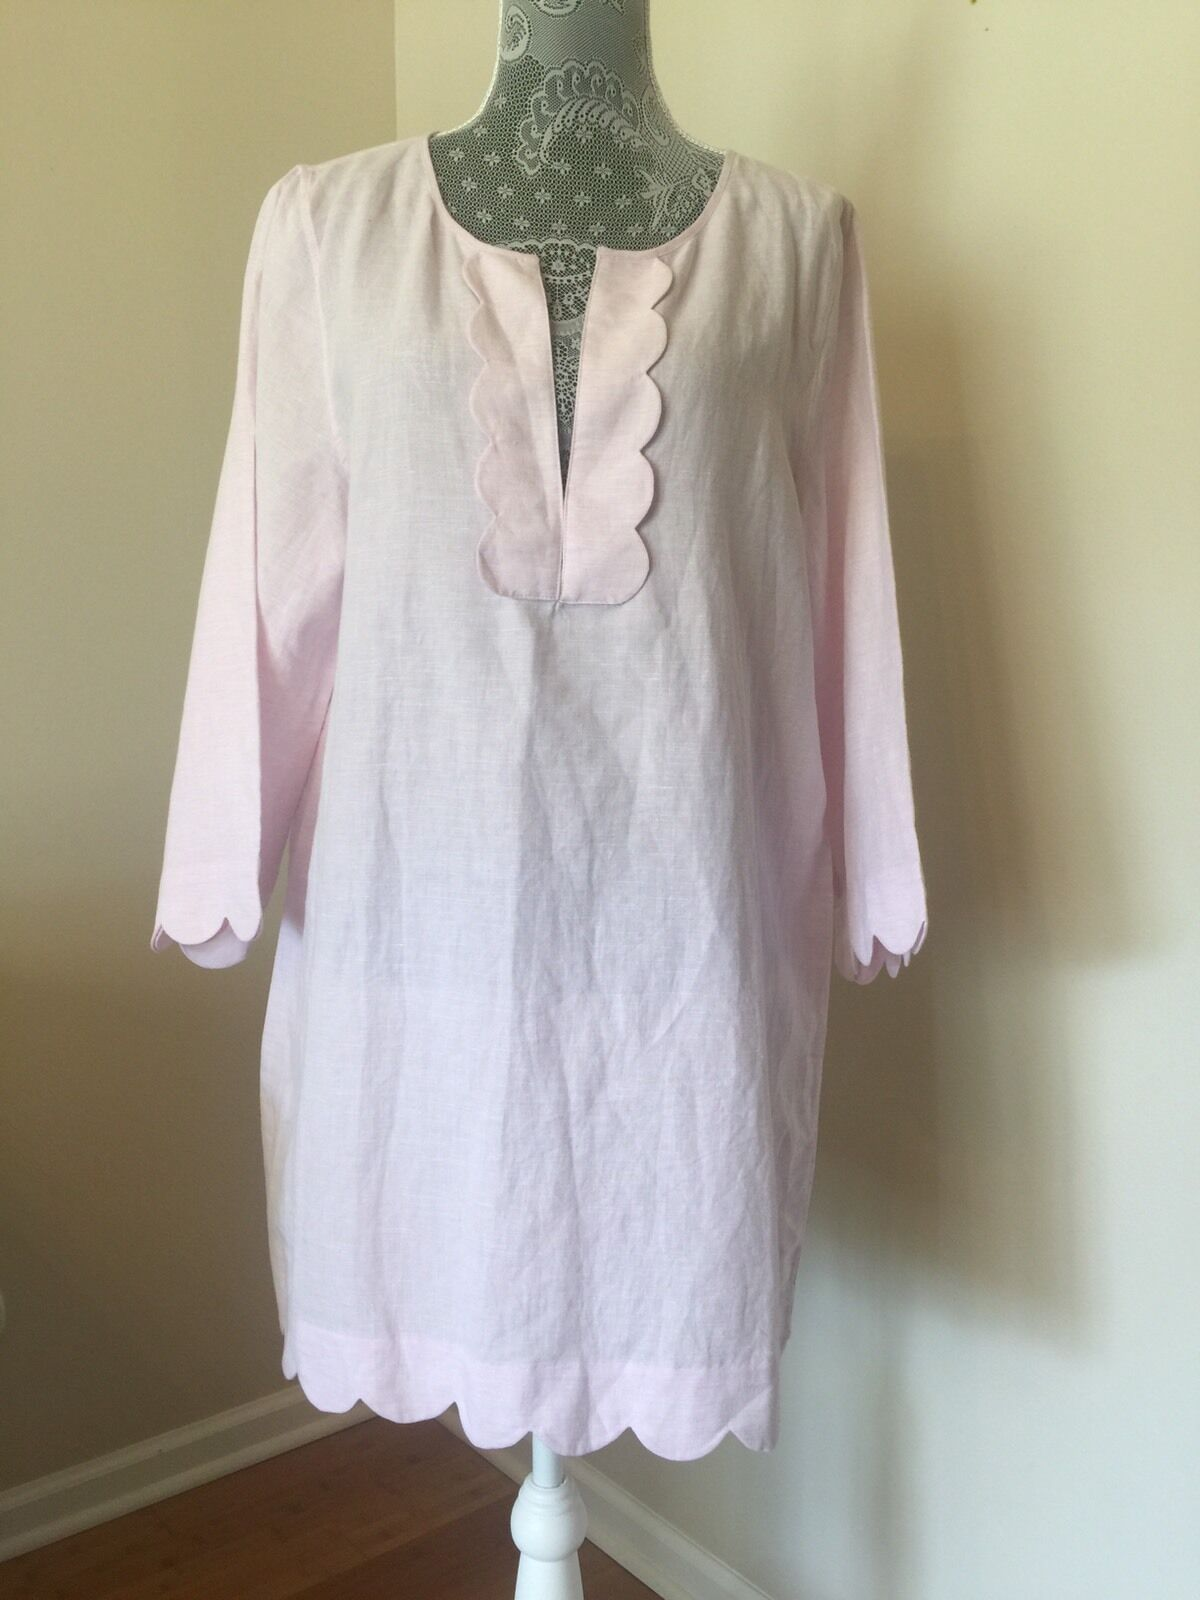 NWT JCREW Scalloped tunic Cover Up Rosa Petal Größe L G5157 SU 17 Sold Out